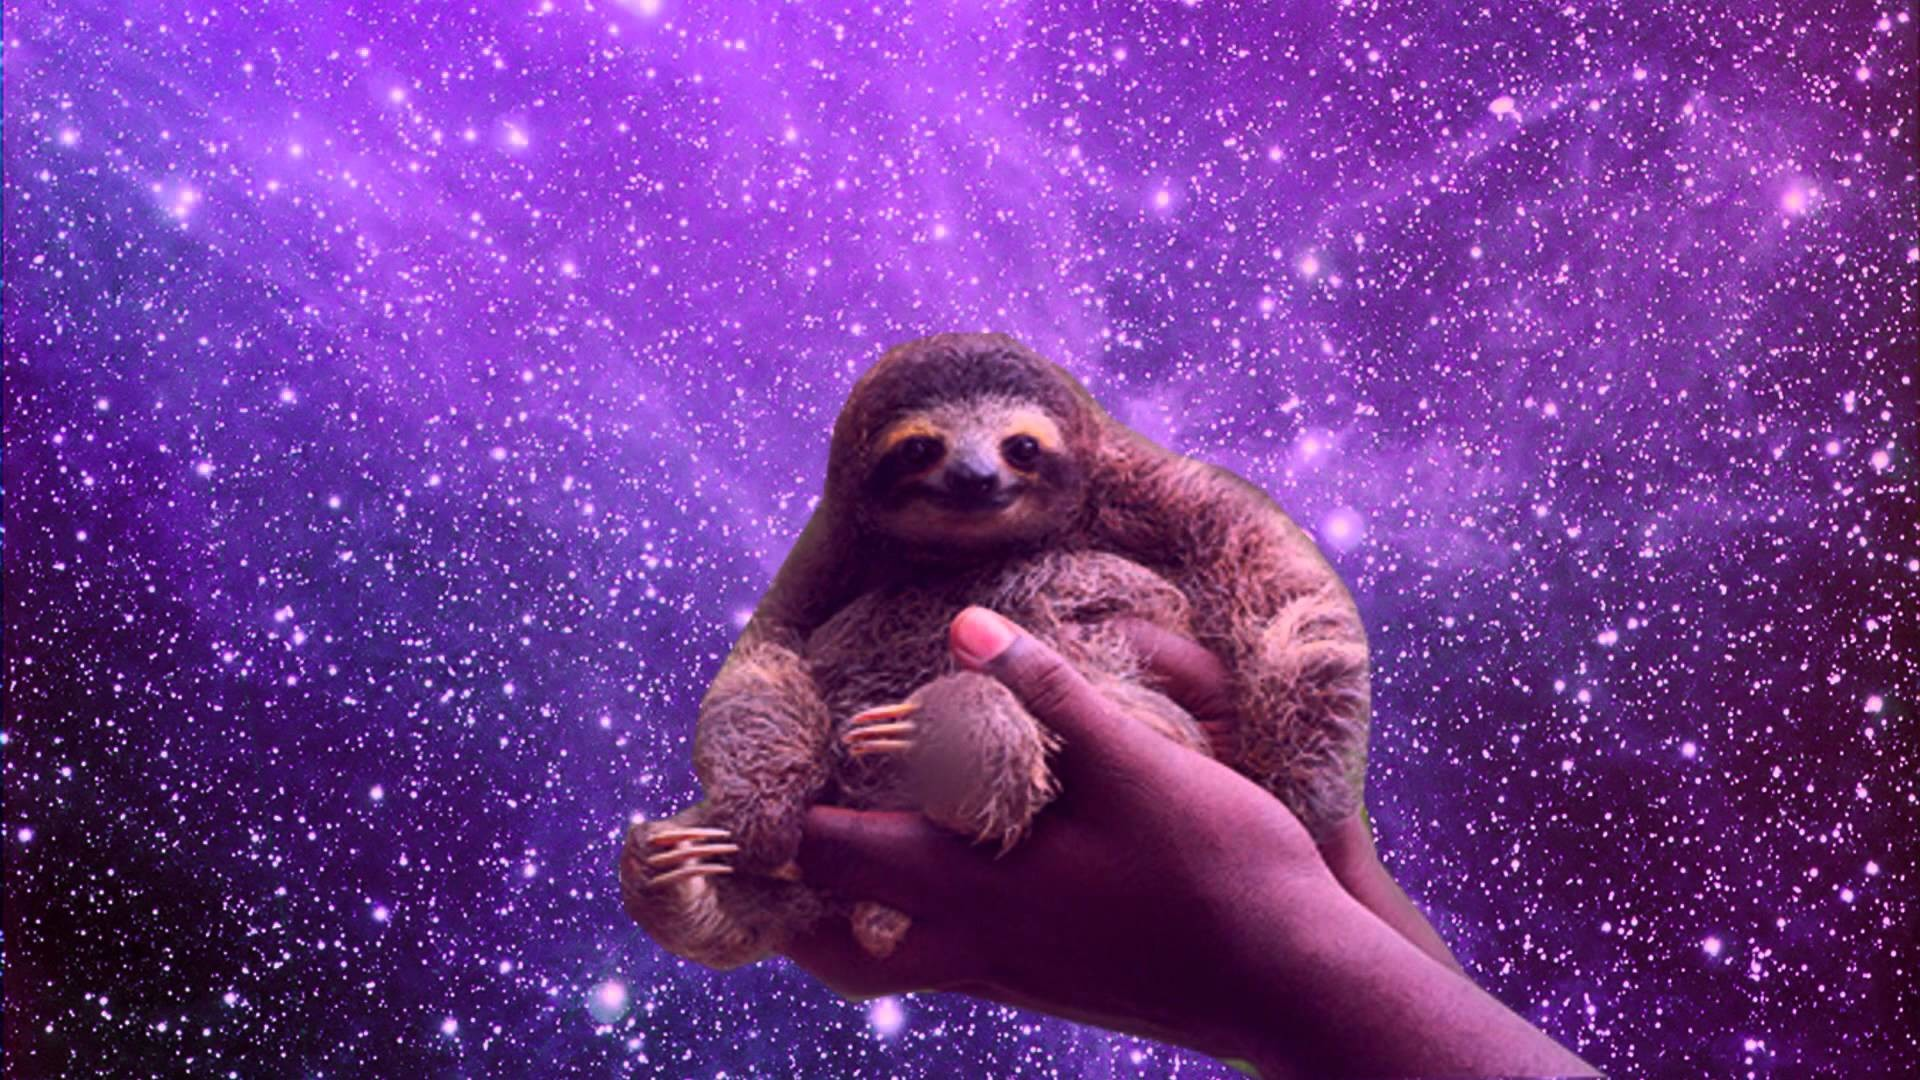 1920x1080 Sloths in Space